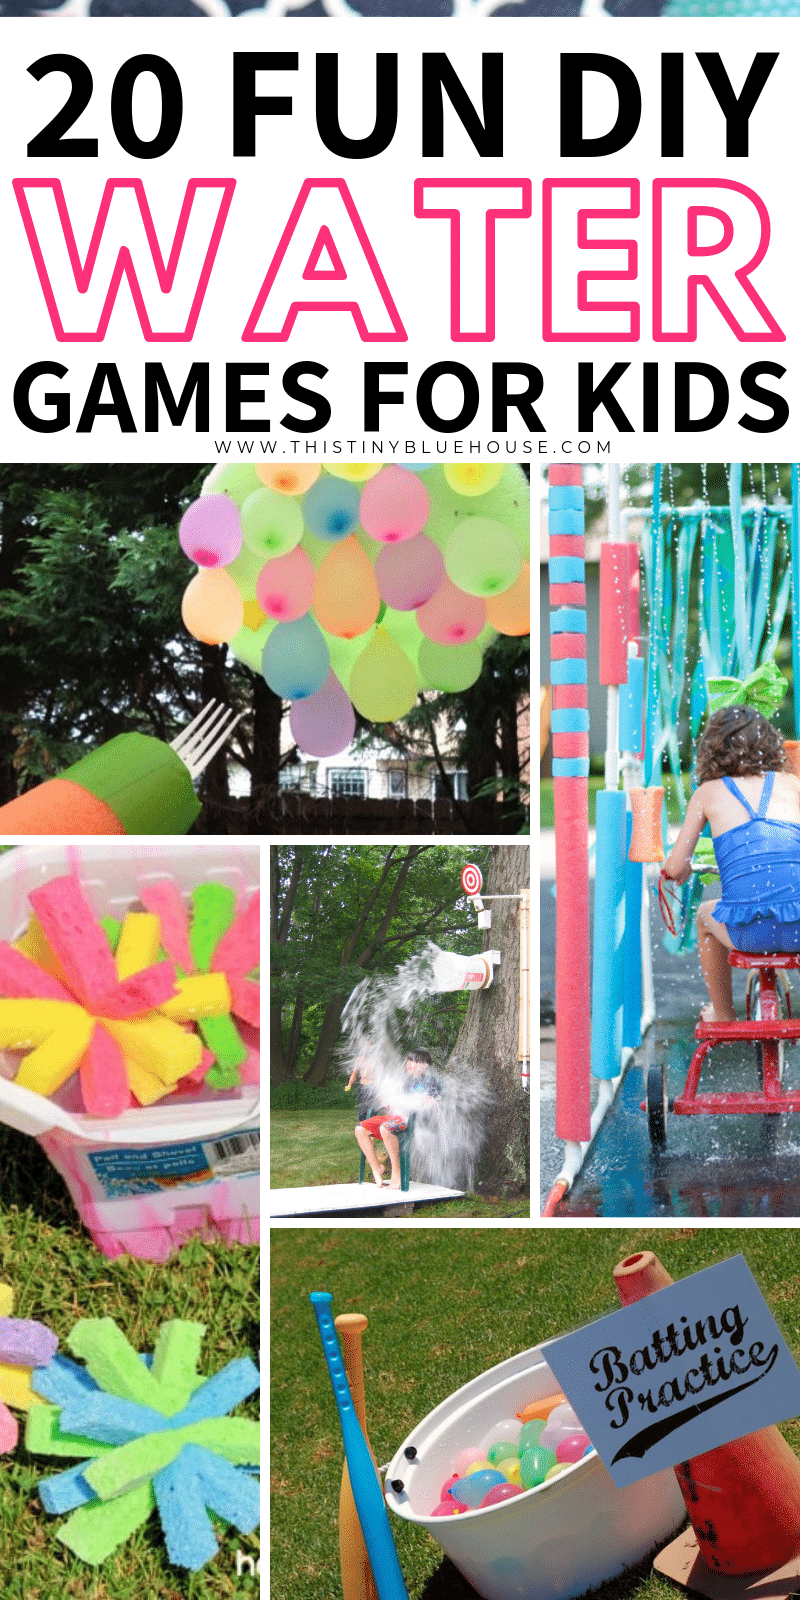 Here are 20 super fun DIY outdoor water games that are the perfect way to create hours and hours of backyard fun on the hottest summer days. #summer #diysummeractivities #diywatergames #diywateractivities #diysummerwatergames #funsummeractivities #boredombustingactivitiesforkids